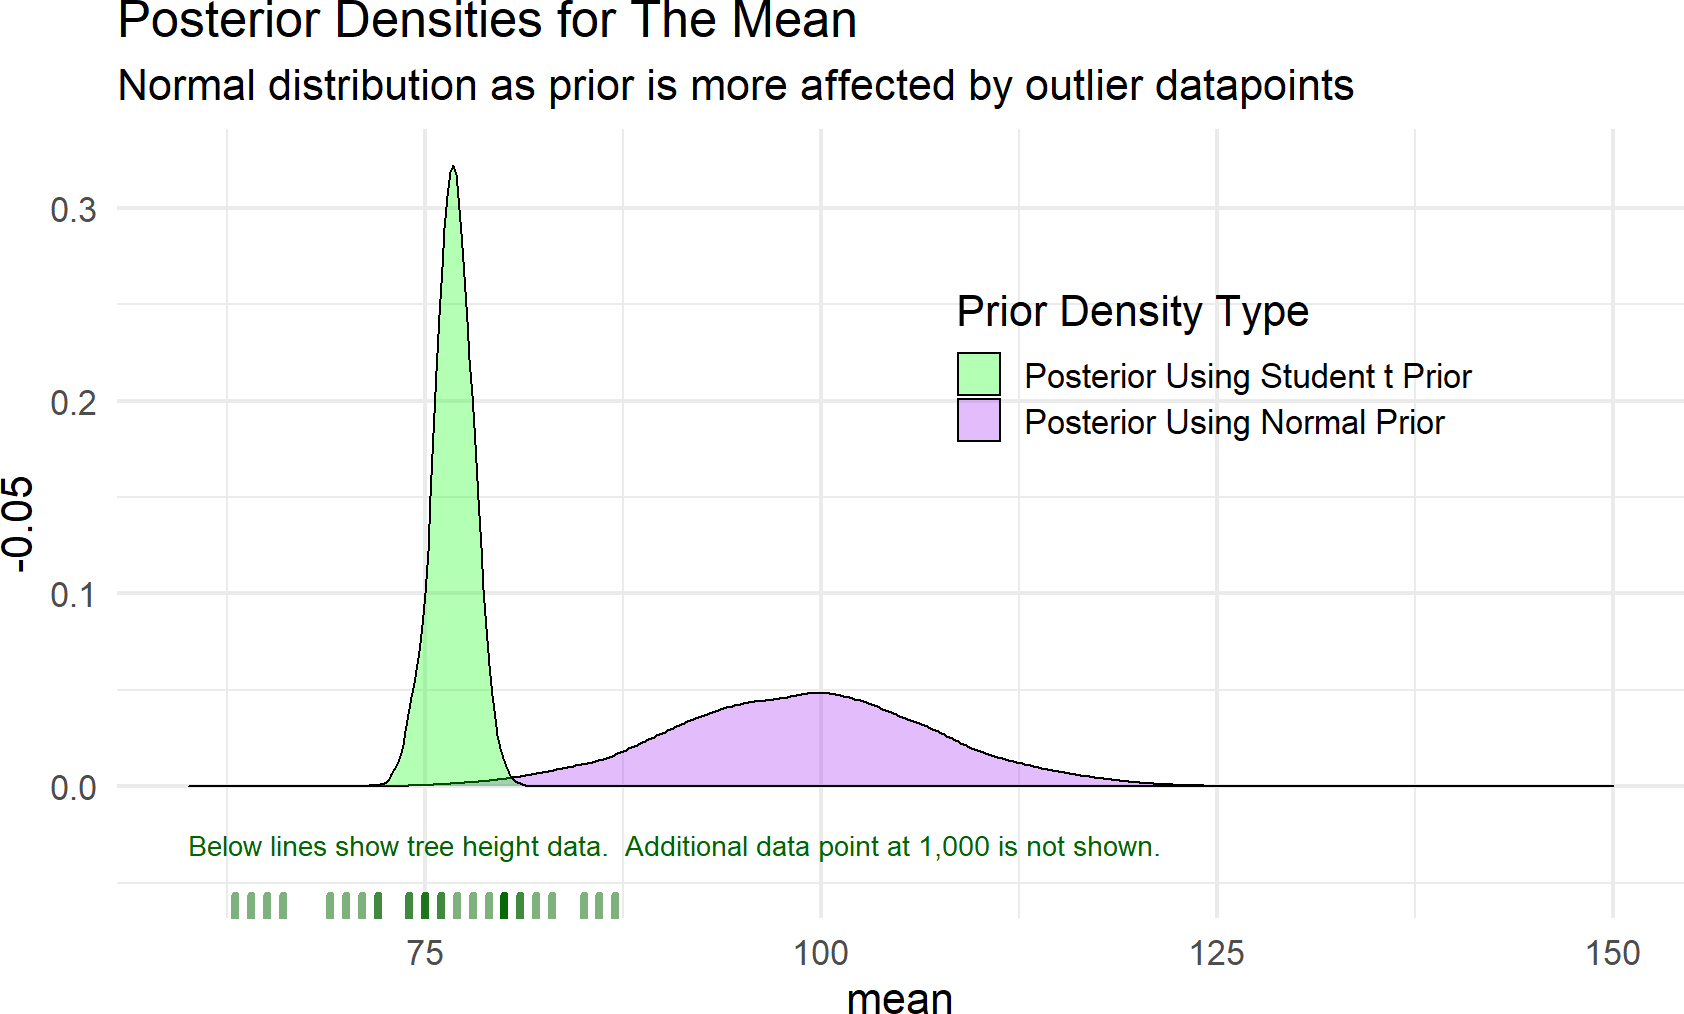 Estimates of a distributions central tendency can be made to downplay outliers by using a student t prior distribution for the mean.